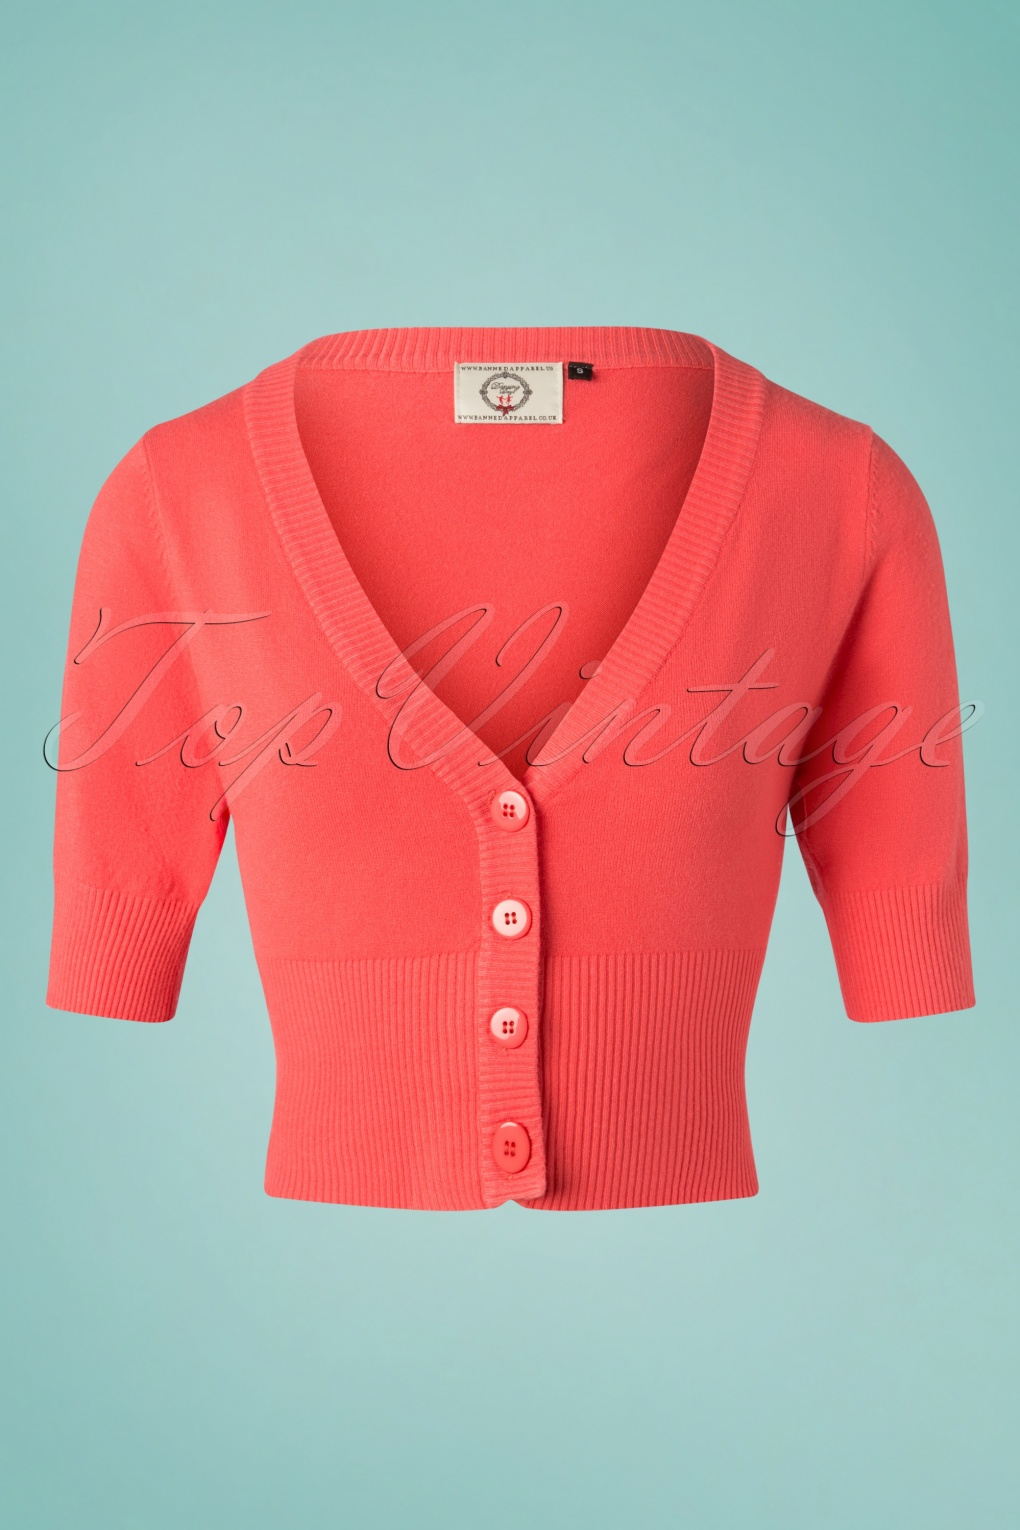 Authentic Natural 1950s Makeup History and Tutorial 50s Overload Cardigan in Coral £26.73 AT vintagedancer.com